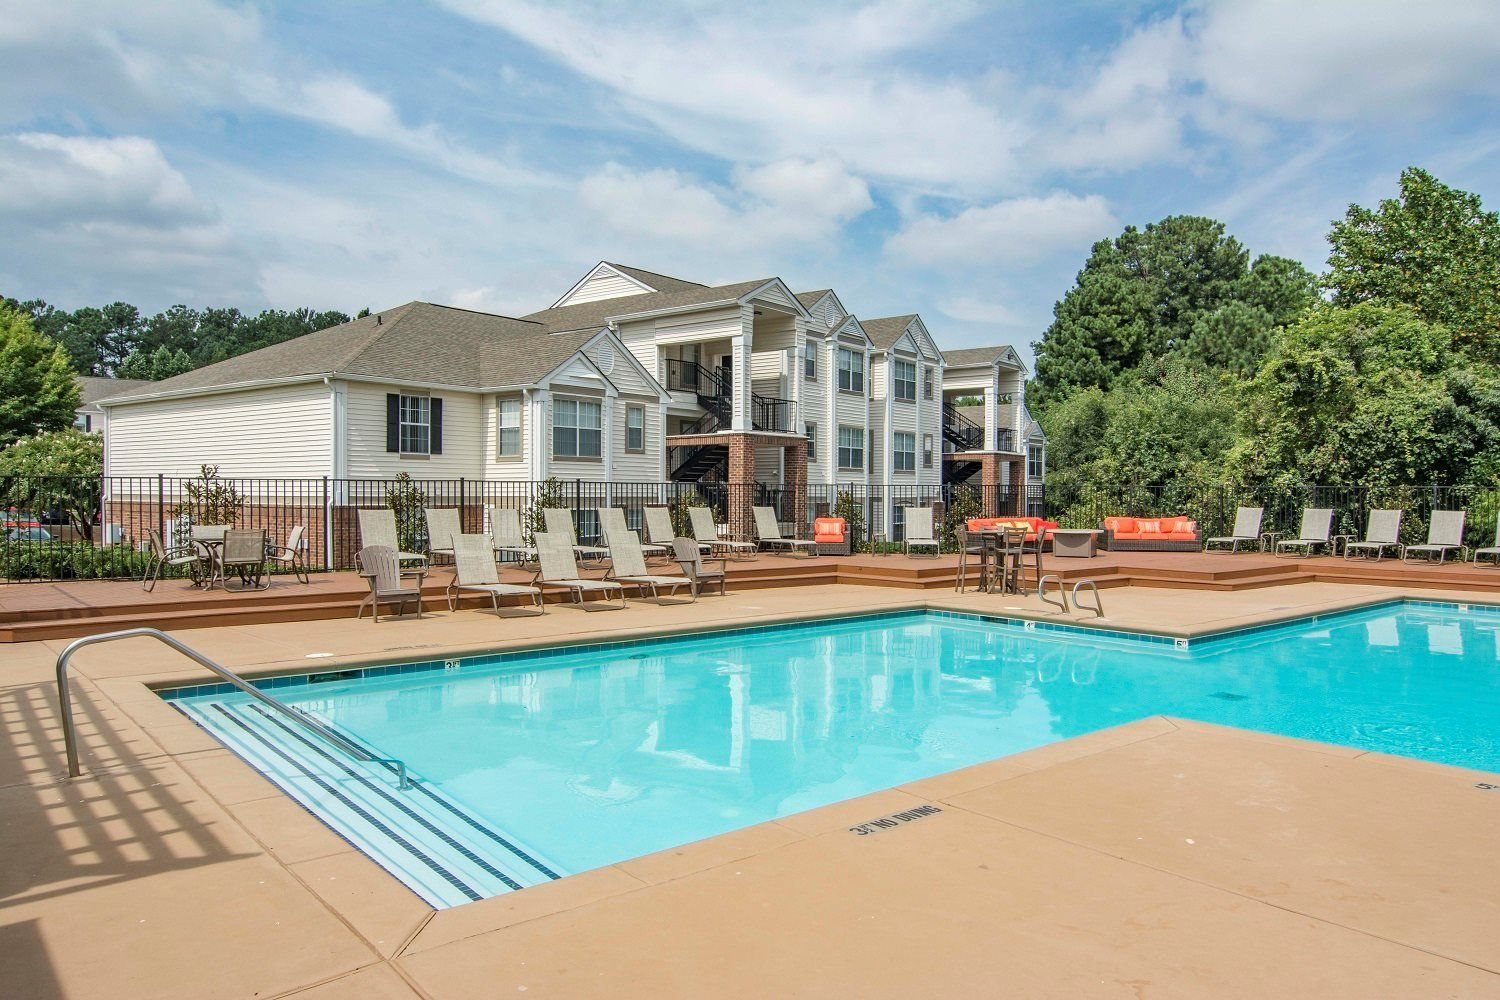 Everly Apartments In Lawrenceville Ga